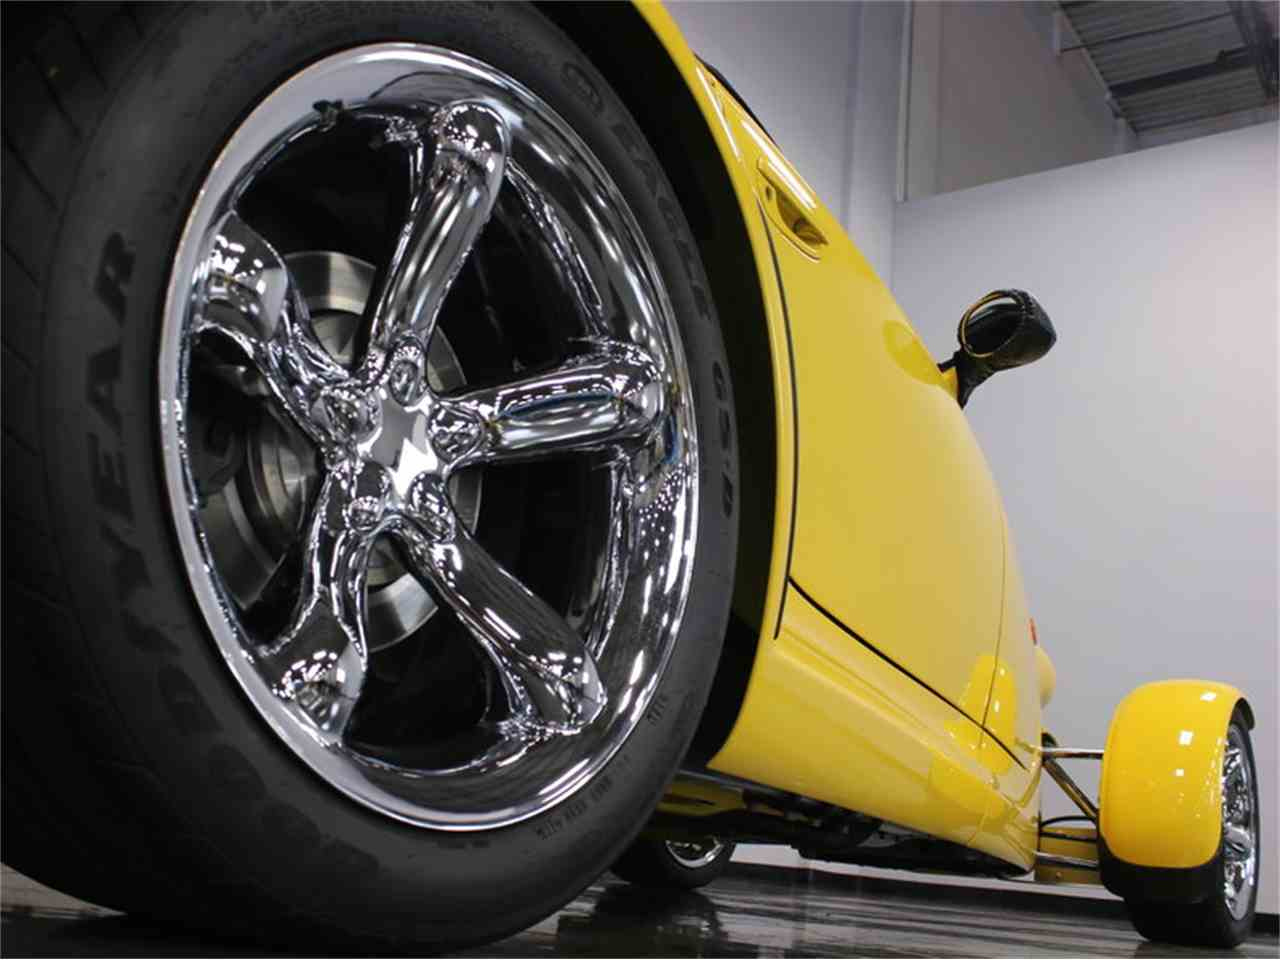 Large Picture of 1999 Prowler located in Ft Worth Texas - $37,995.00 Offered by Streetside Classics - Dallas / Fort Worth - J56O